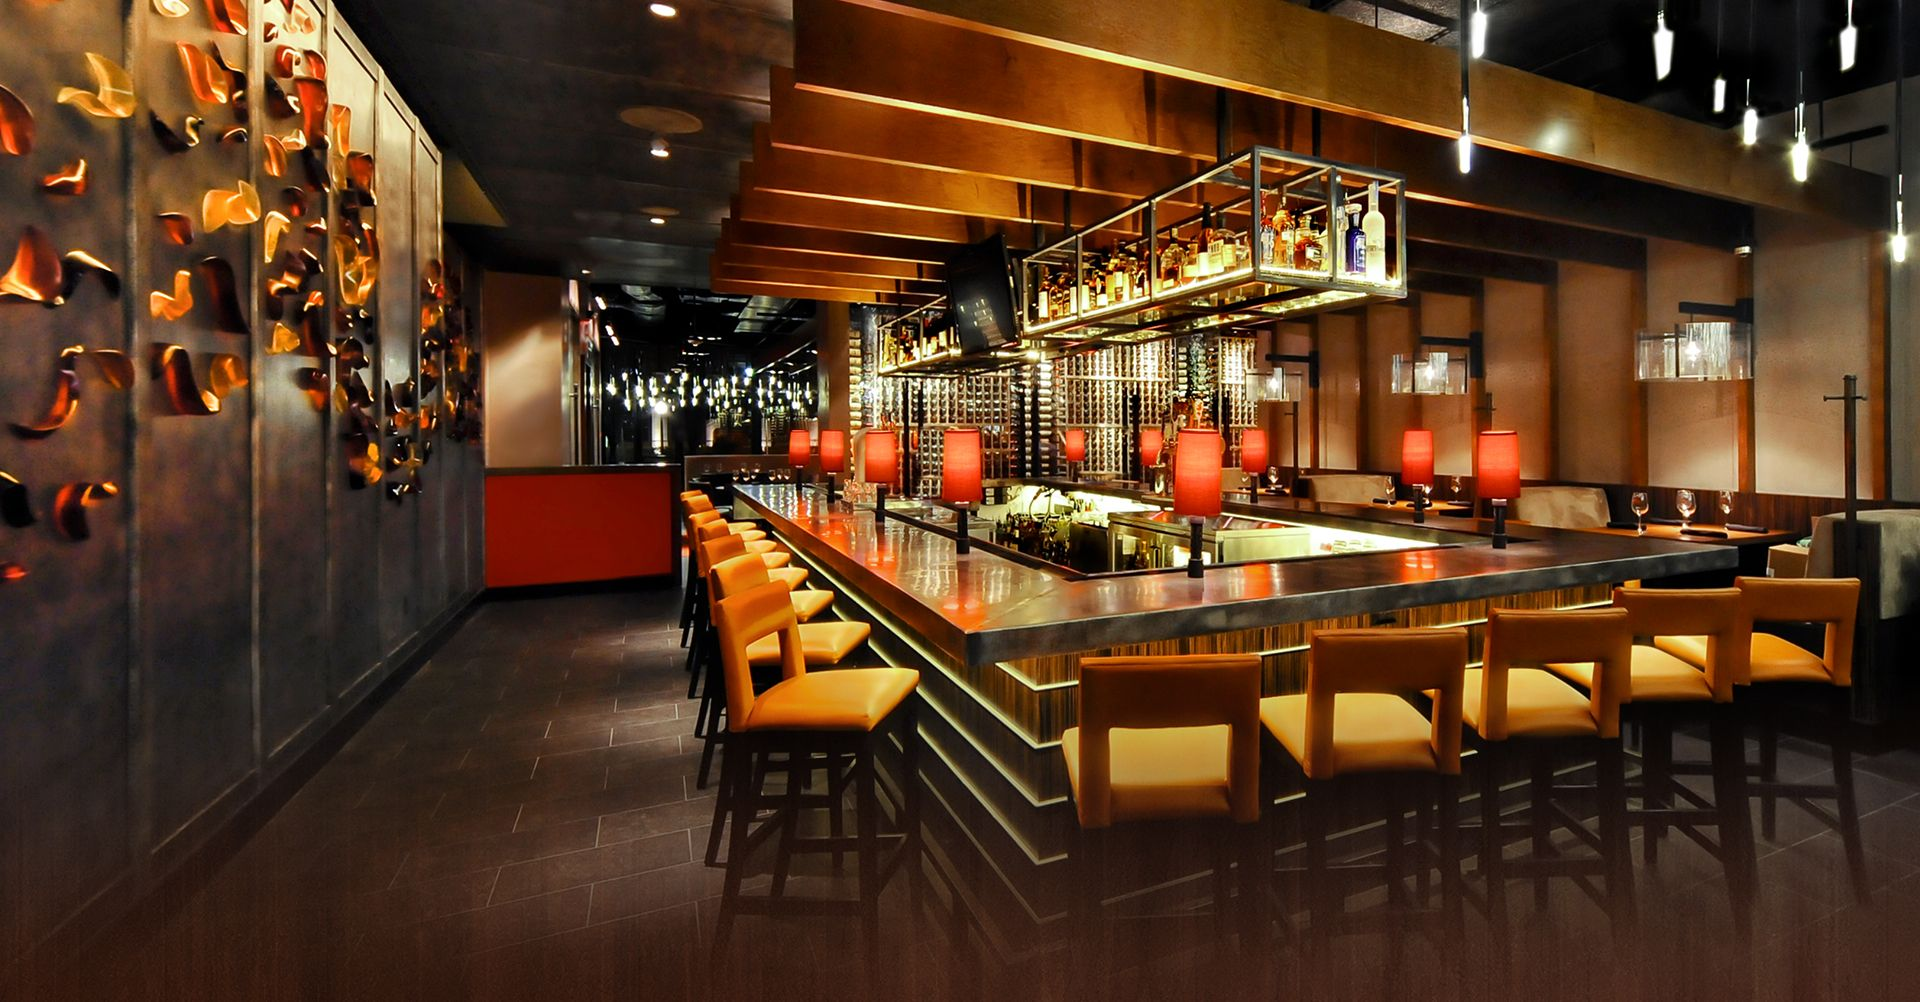 Del frisco s grille an upscale american bar grill for American cuisine boston